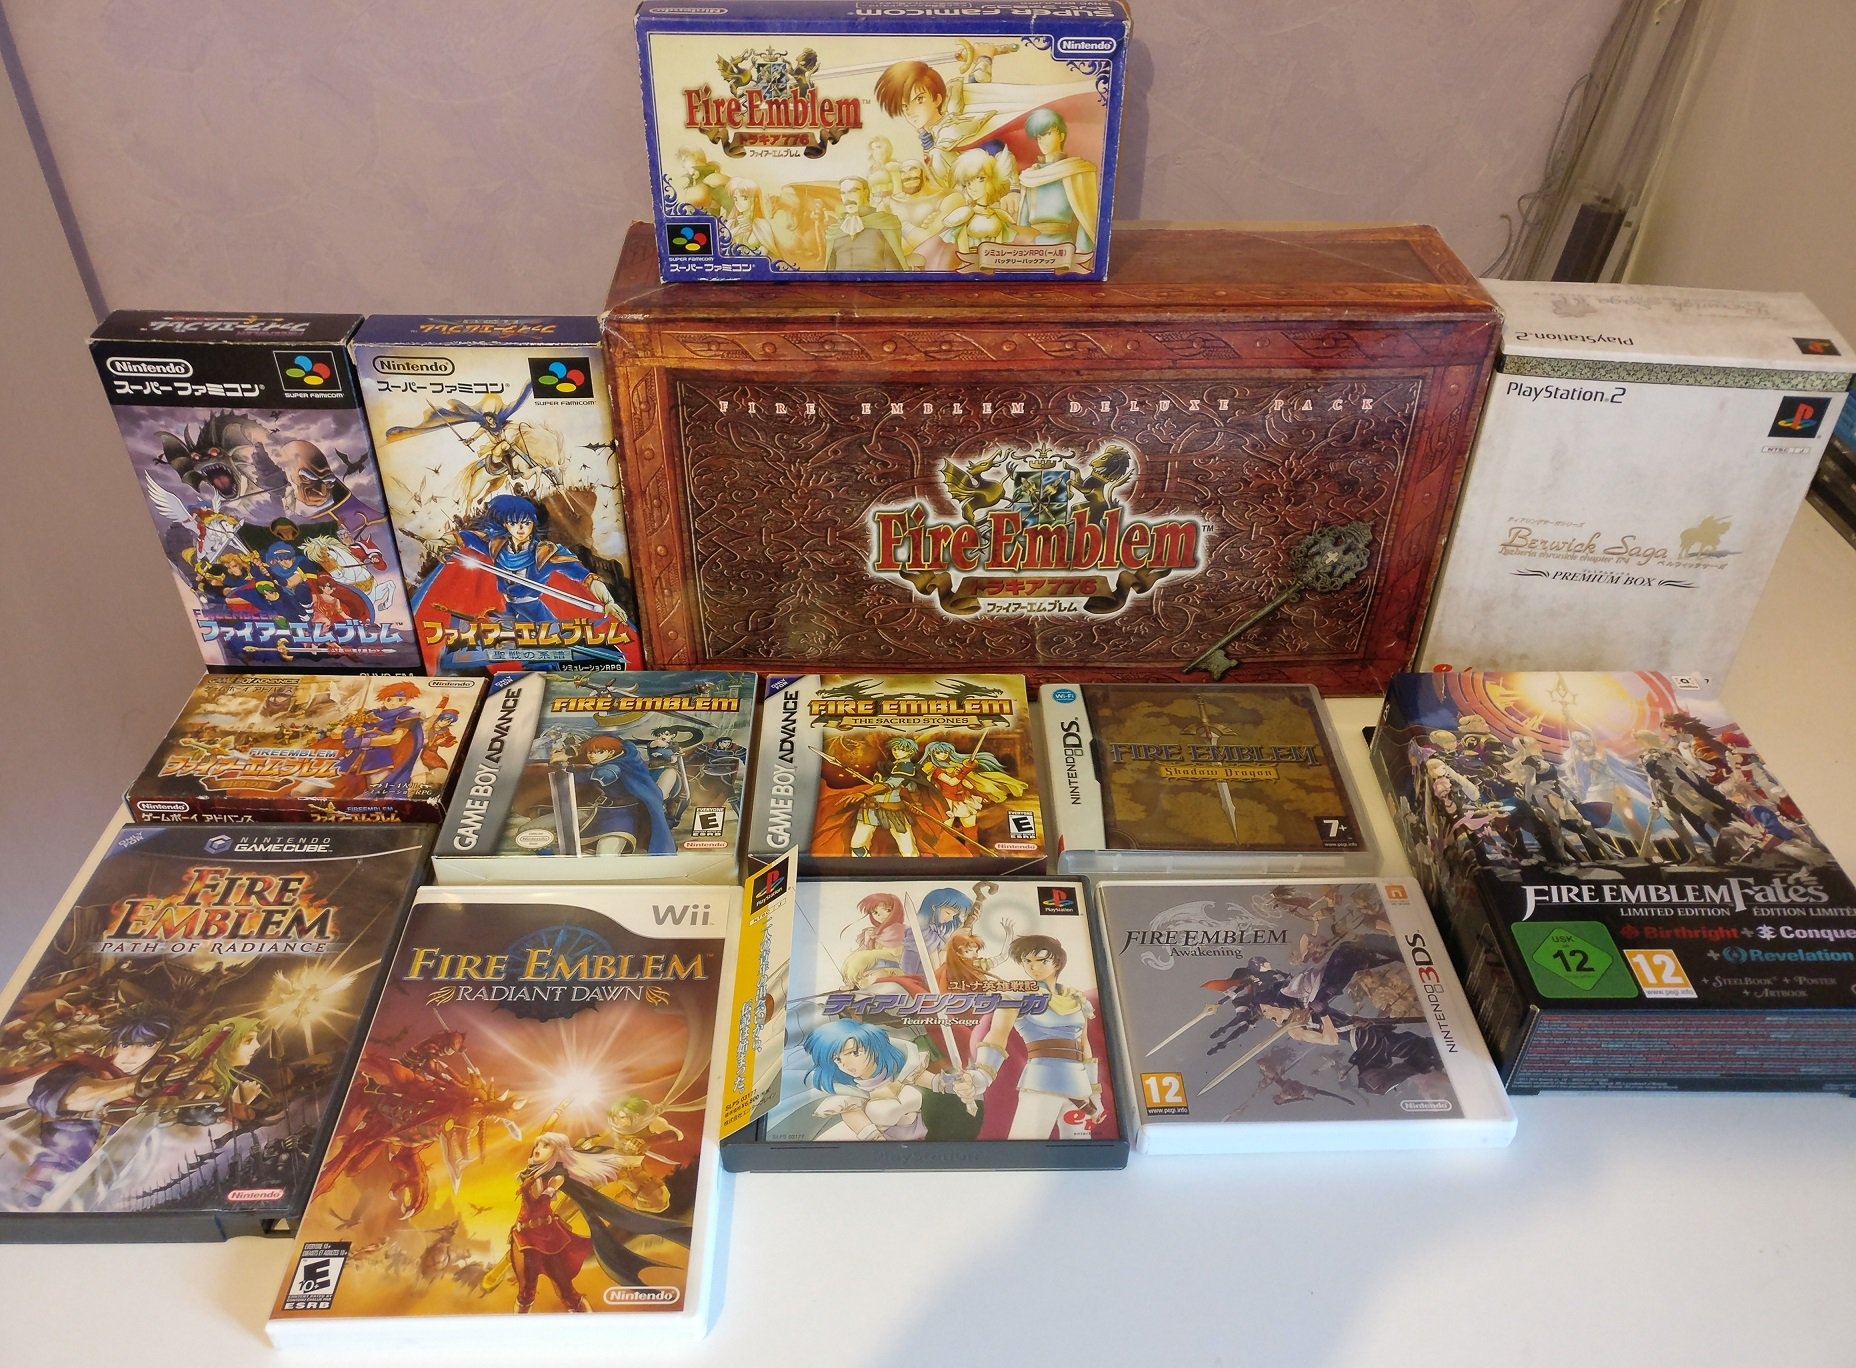 Fire Emblem Collection